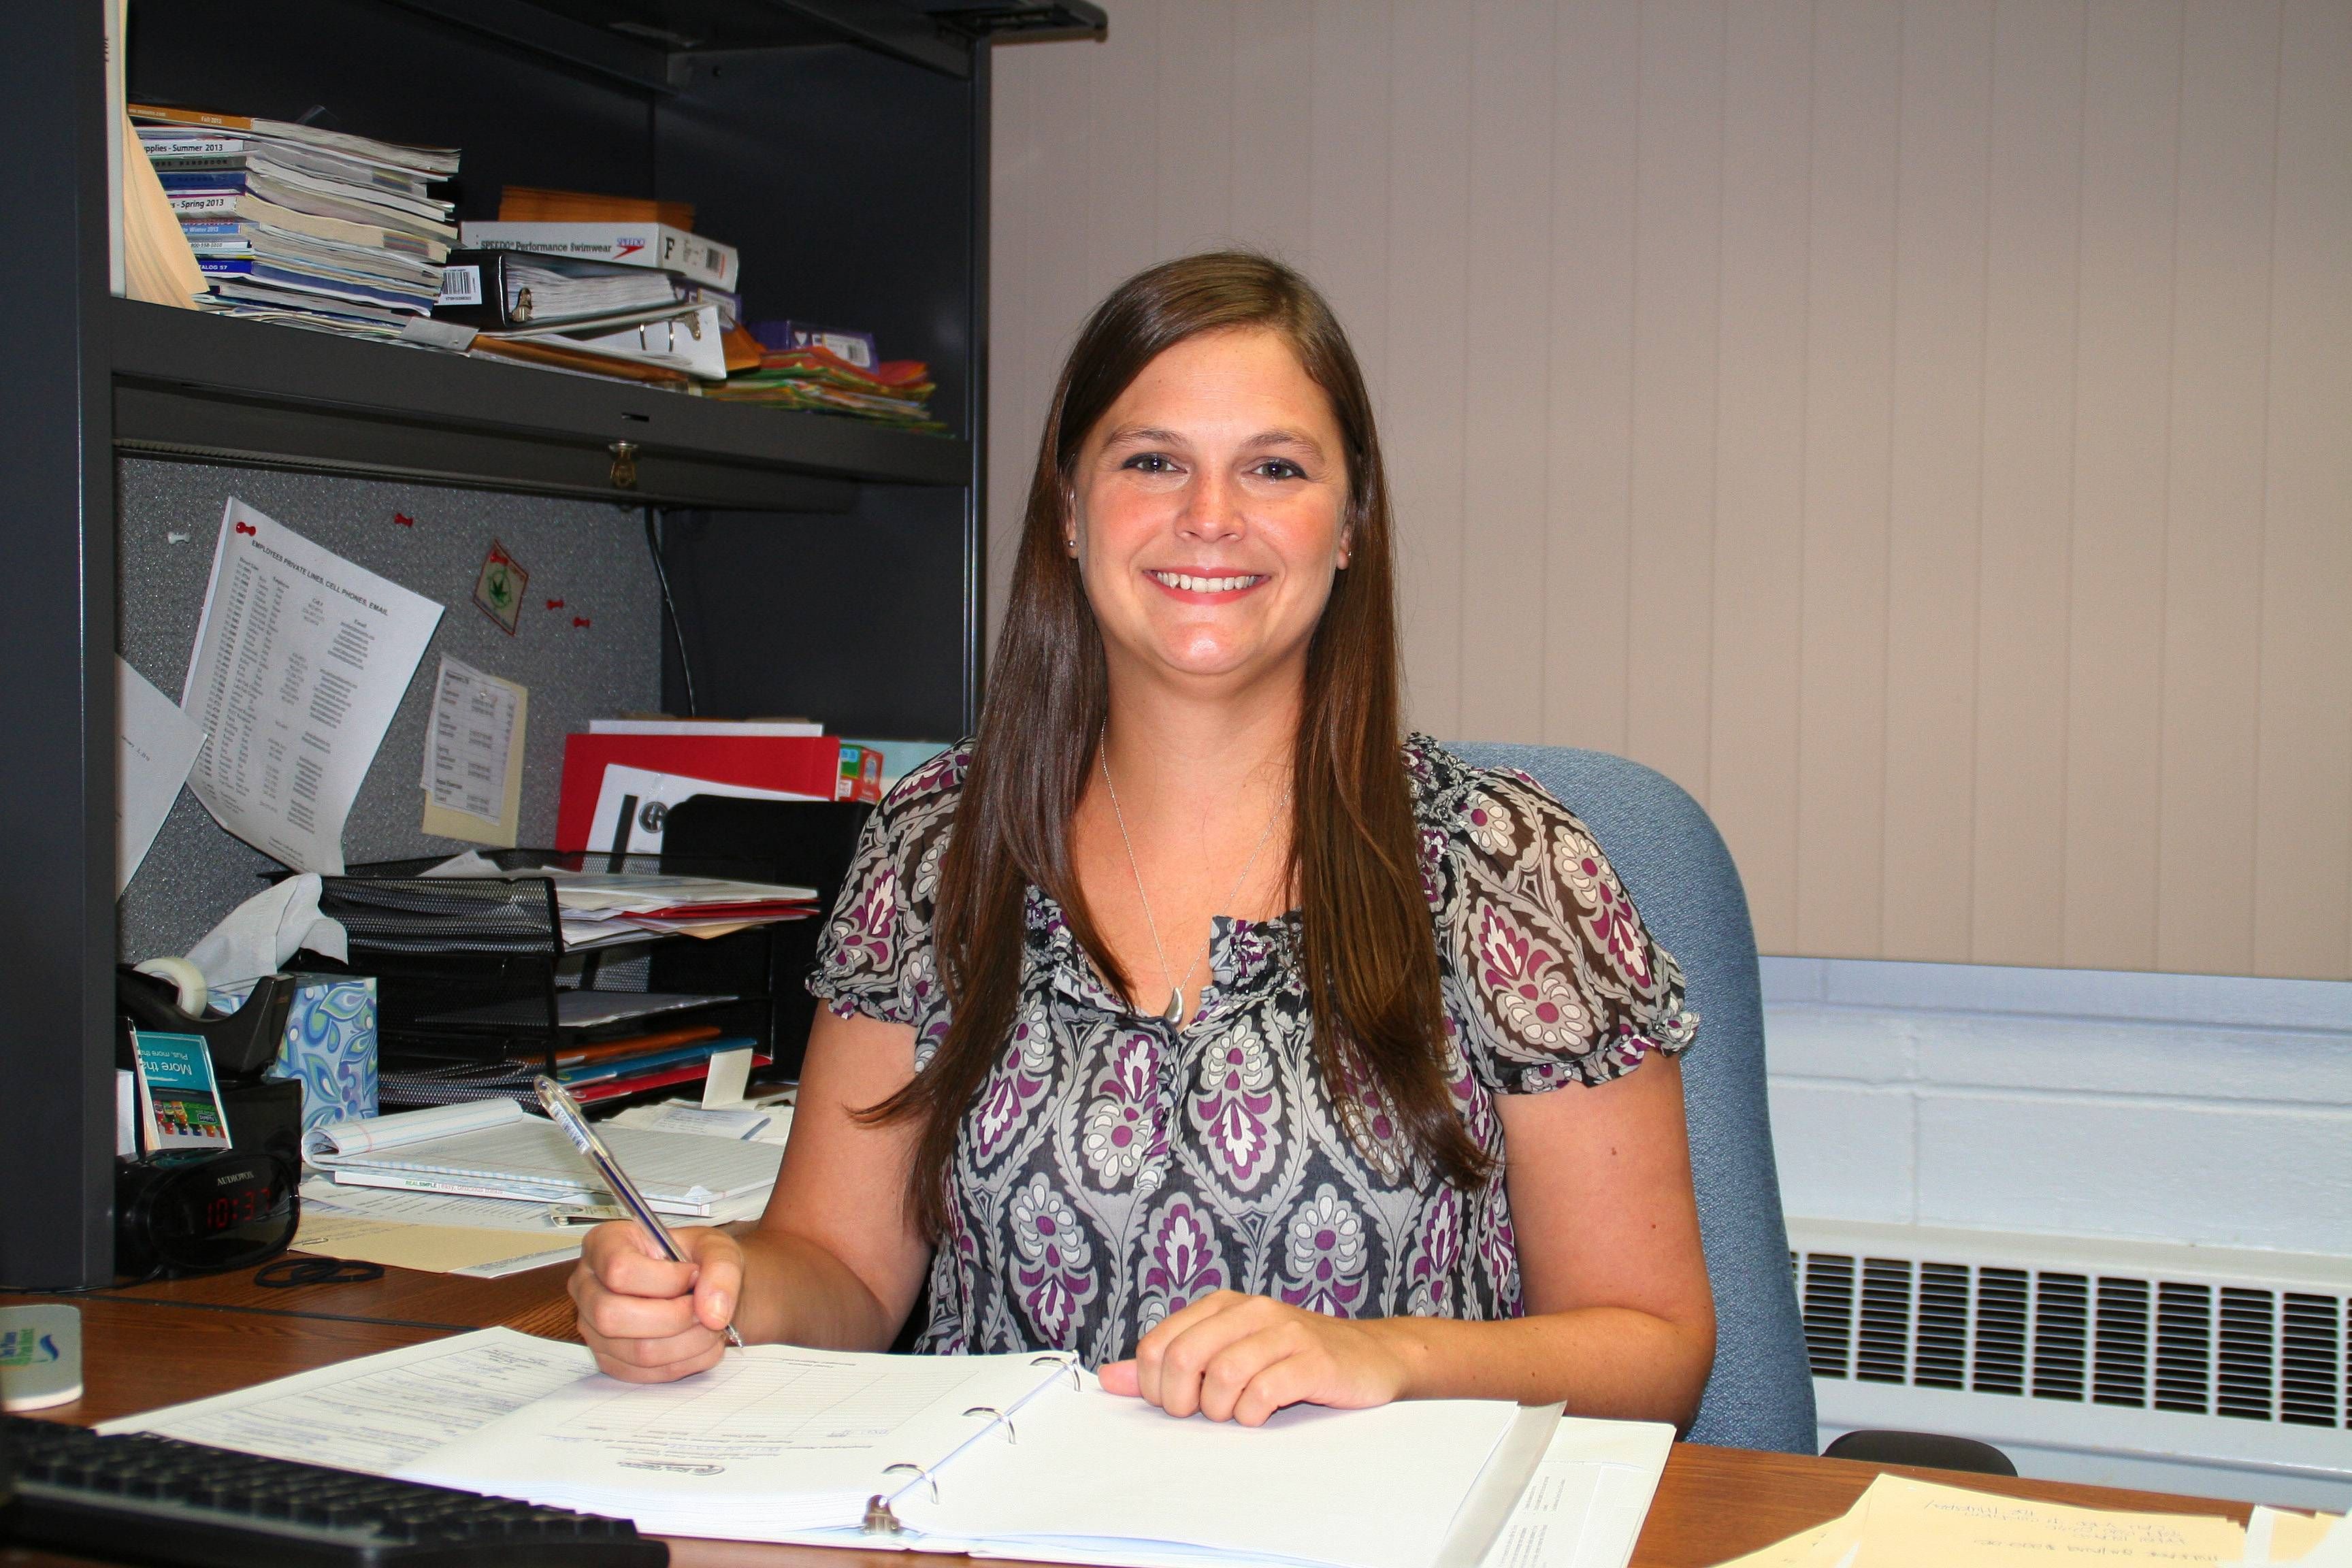 Desiree van Thorre is promoted to Human Resources & Risk Manager for the Des Plaines Park District.